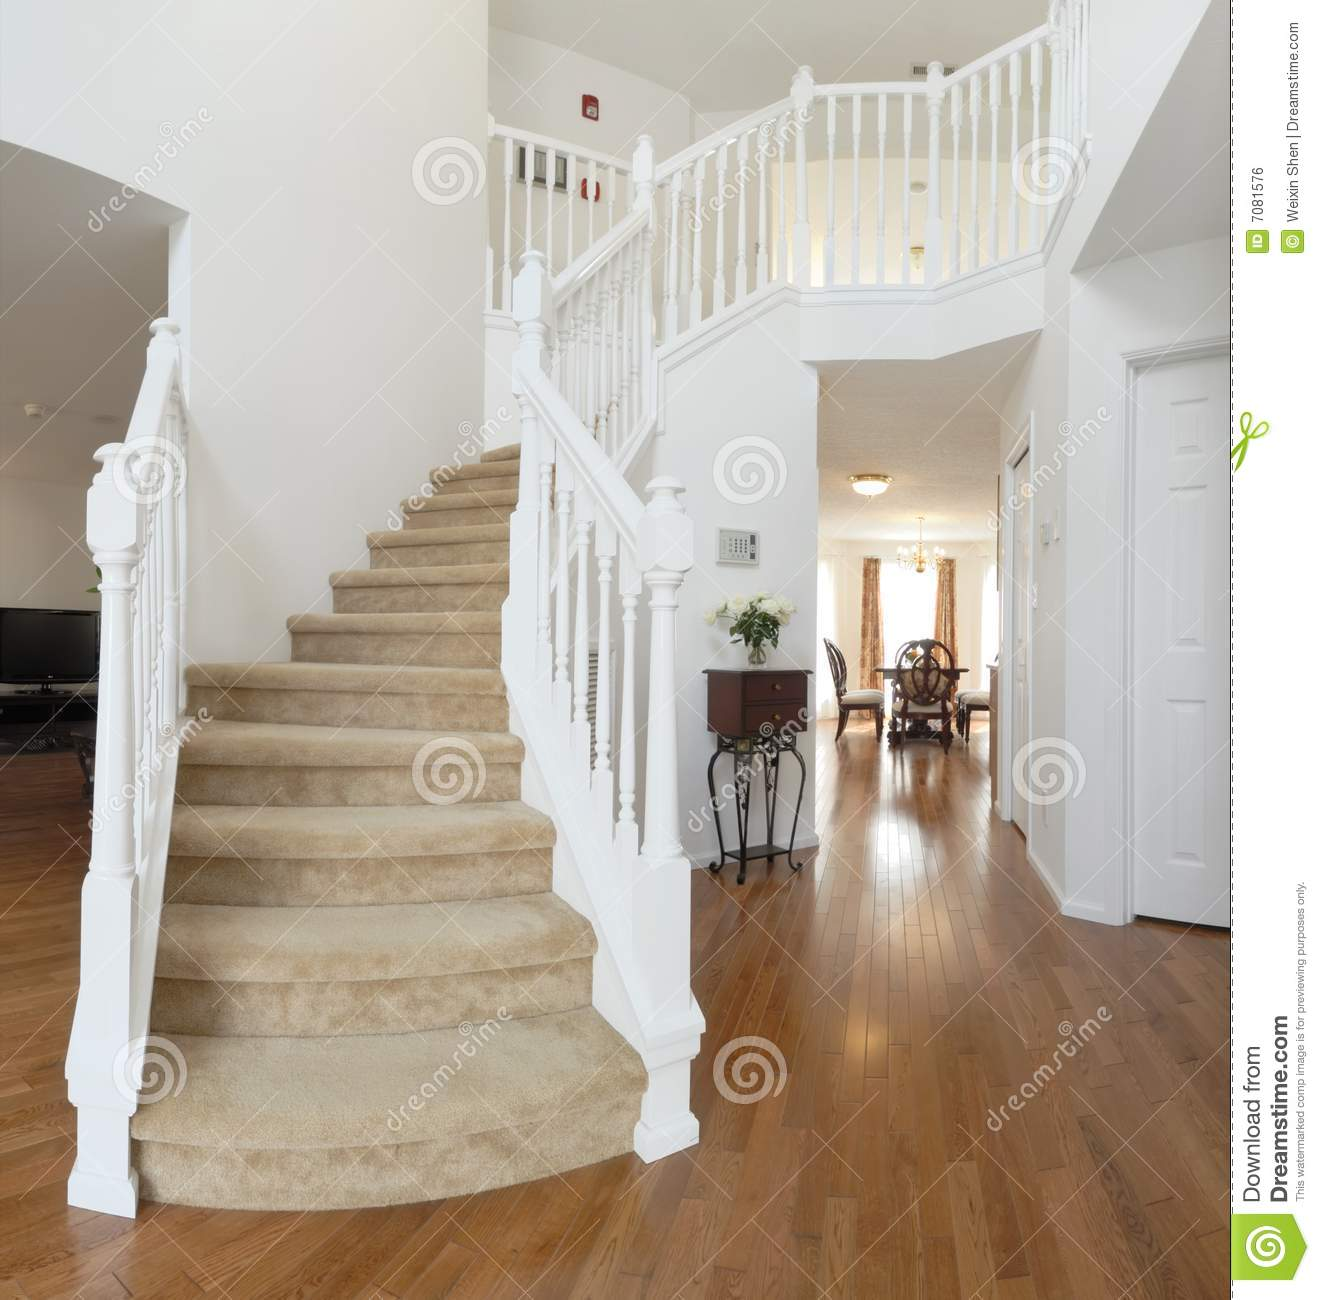 Home Interior, Staircase Royalty Free Stock Image - Image ...